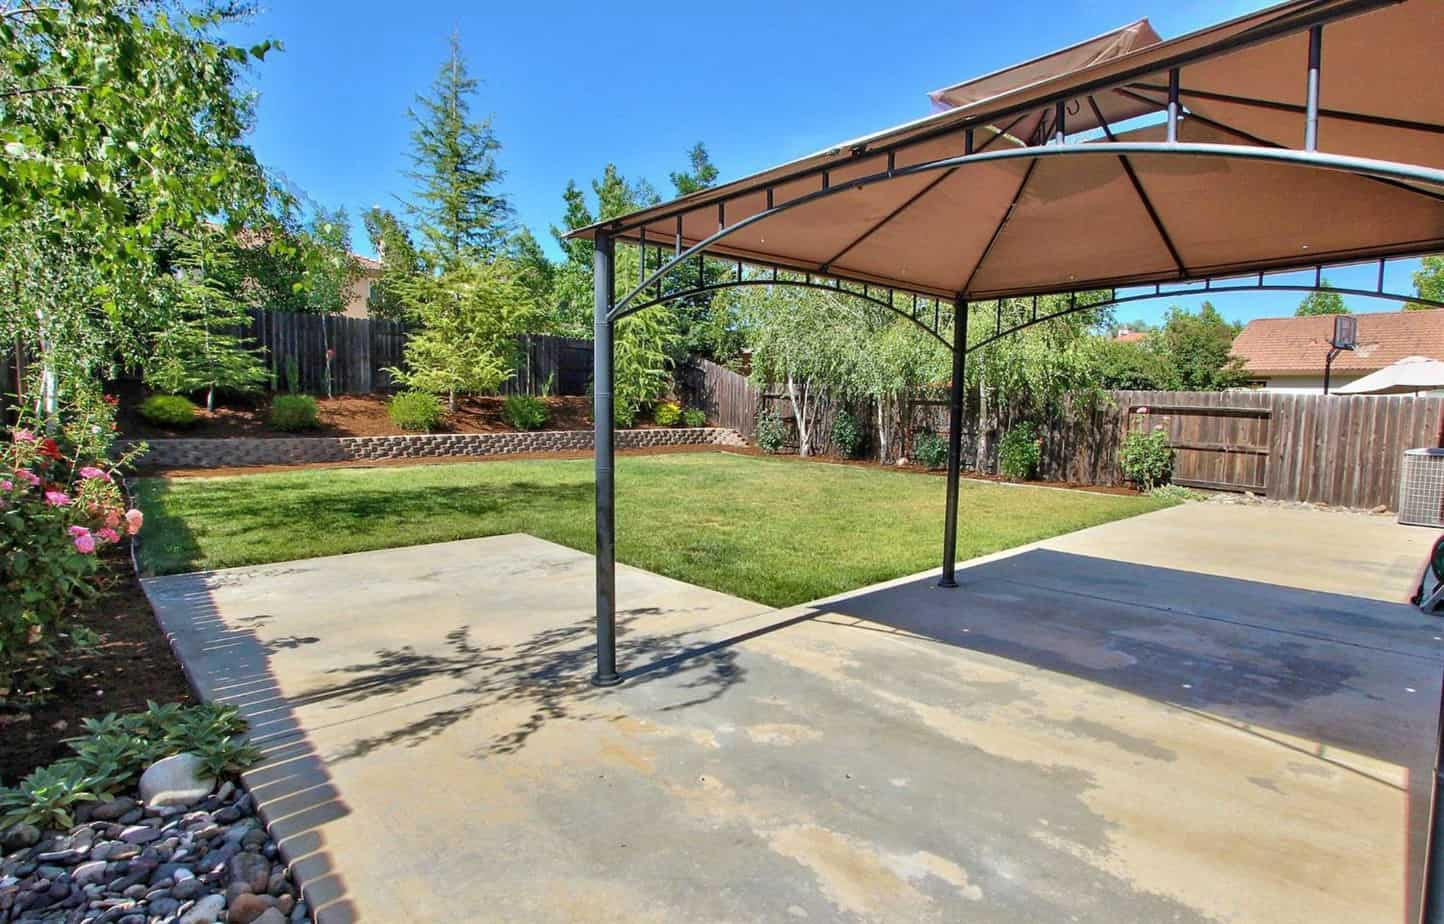 r Roseville Real Estate Agent Kaye Swain shares MLS 16034679 house for sale in Lincoln California large backyard